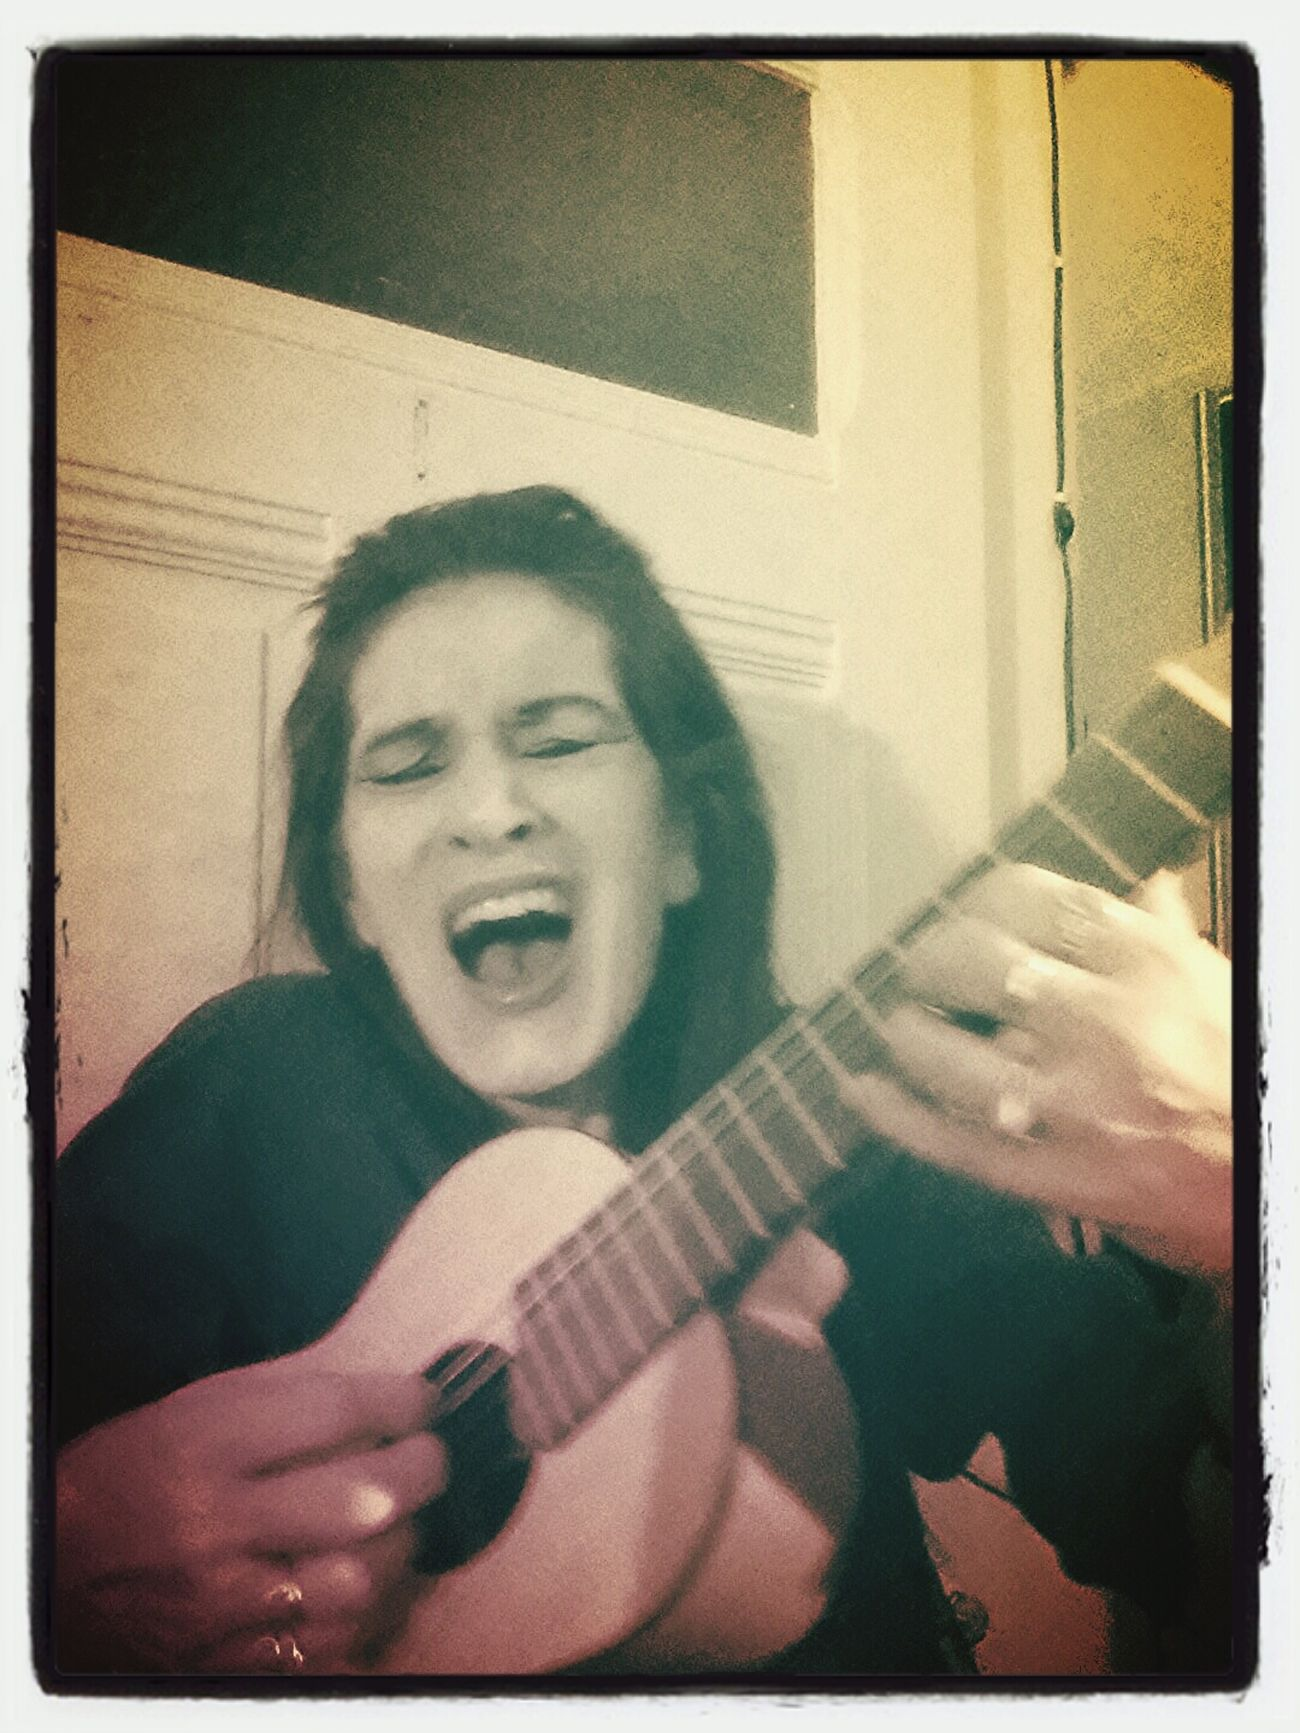 "Excercising LOVE LOVE LOVE PEACE & RESPECT...!! I Mustn't Sing But I Do & Play My Little Yamaha Guitalele...in La...then I ""forget"" All The Worse 4 A WHILE AT LEAST... PEACE & LOVE & DON'T FORGET : YOU'RE NOT ALONE!"